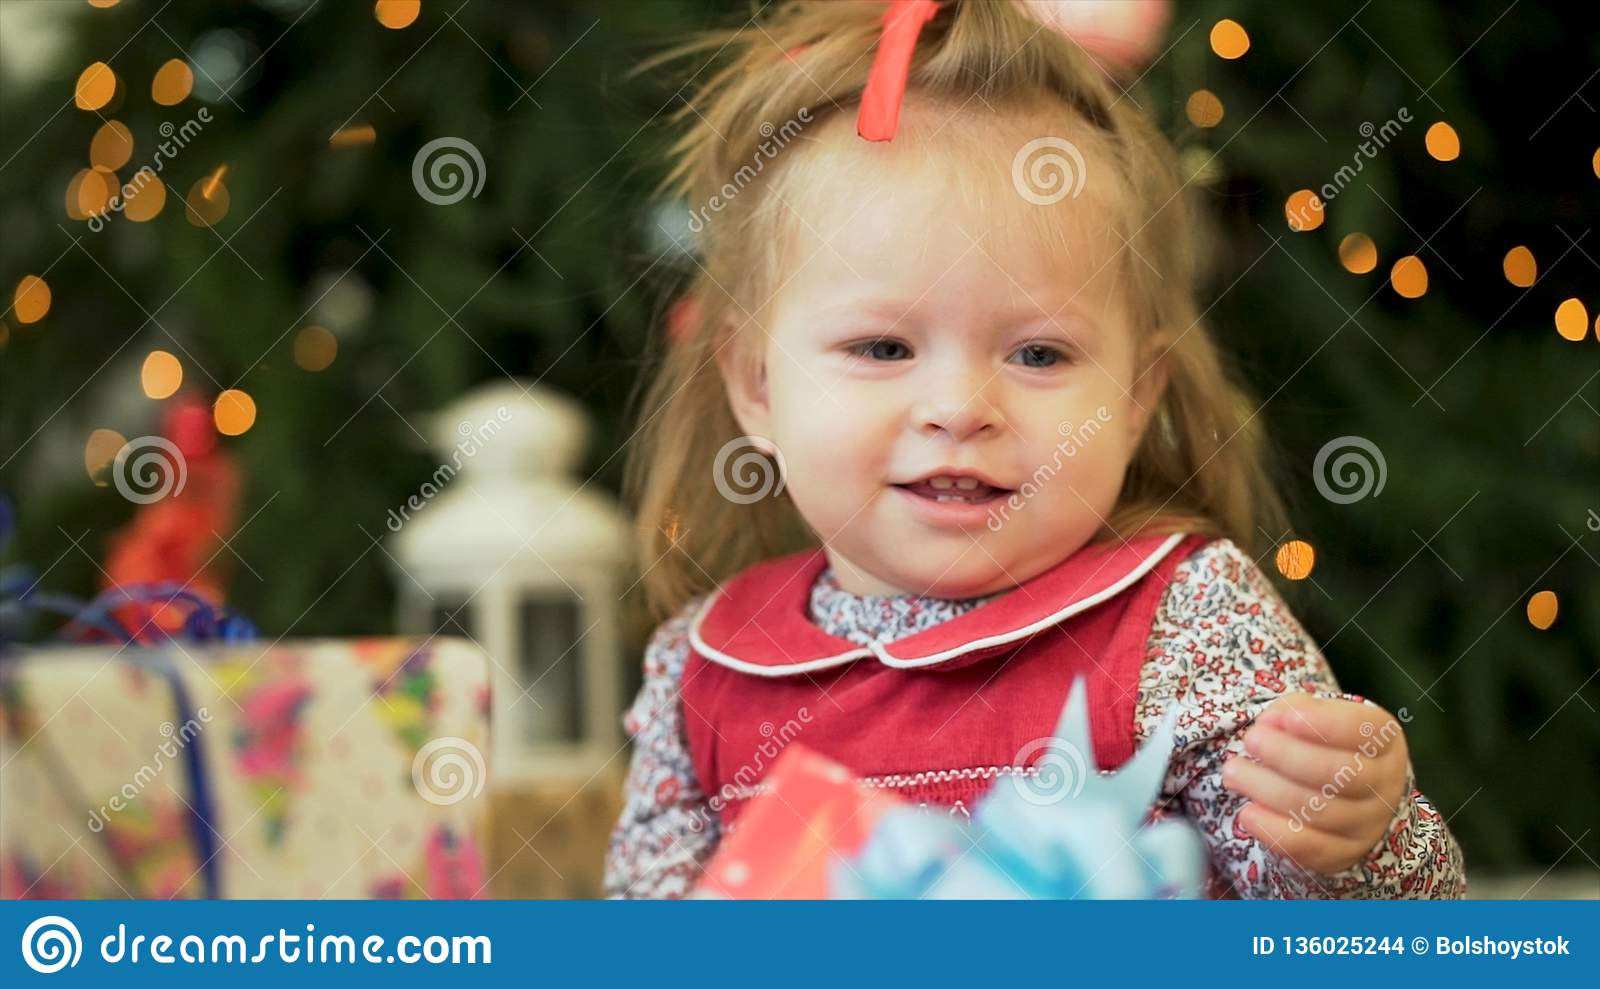 Pretty little girl near the new year tree. Little girl smiles and play with gifts on the background of Christmas trees